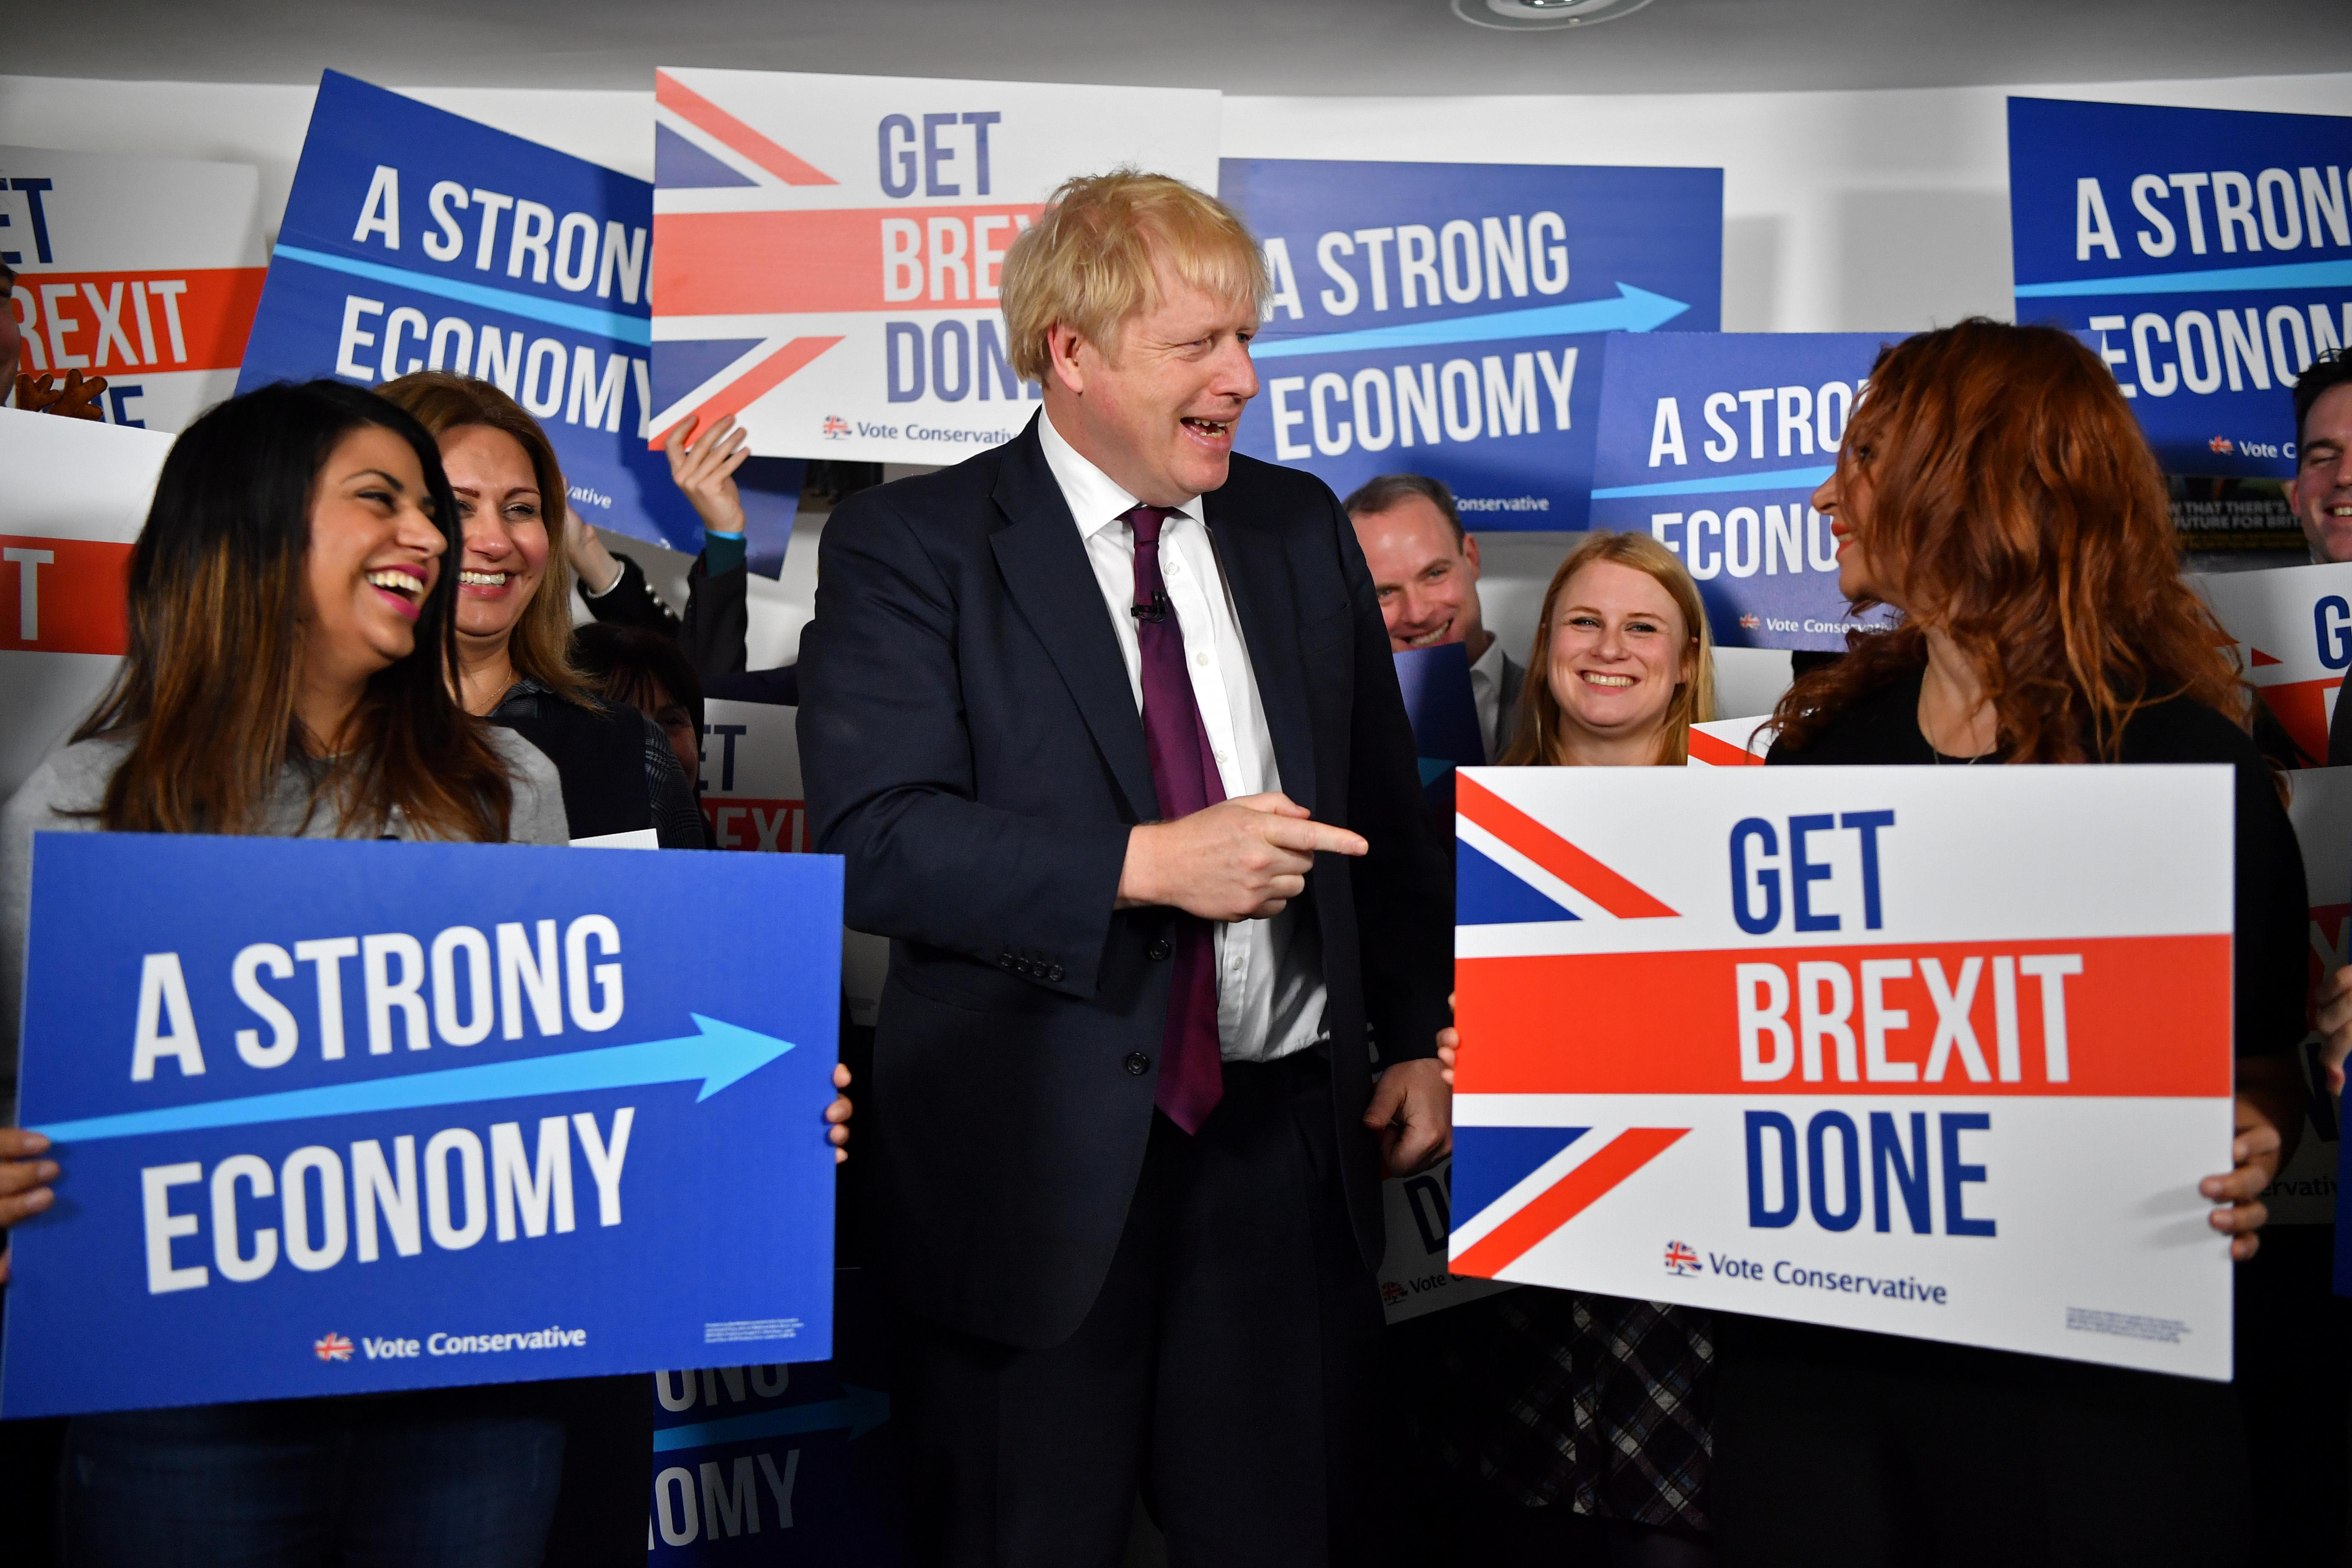 Johnson pledges transformative Brexit as nerves are rattled by UK...